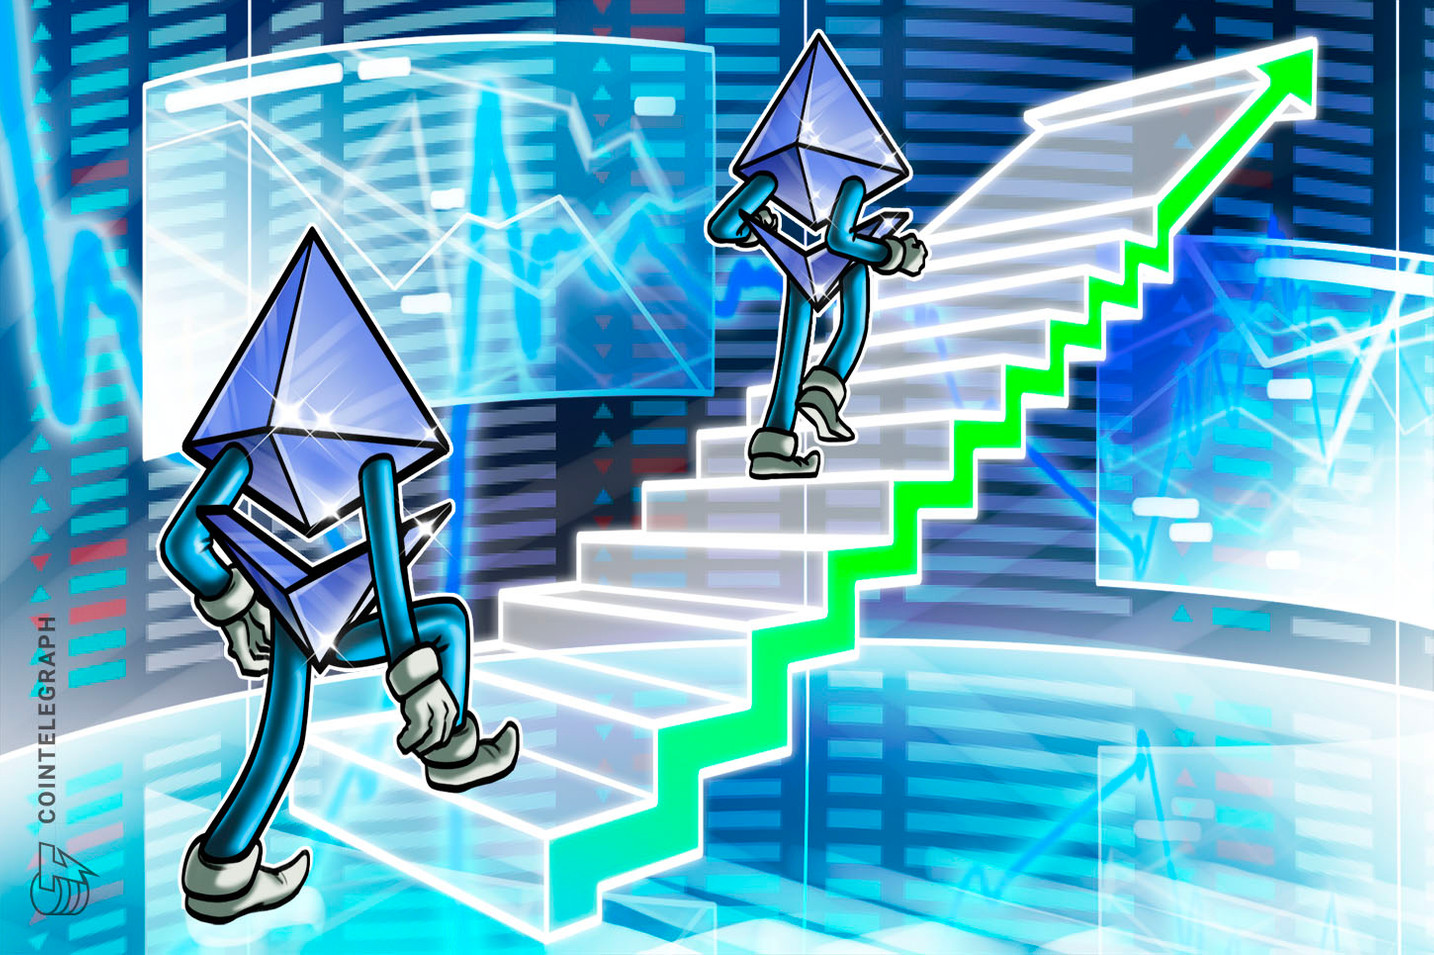 Ethereum price targets $590 after bulls vigorously buy the ETH dip